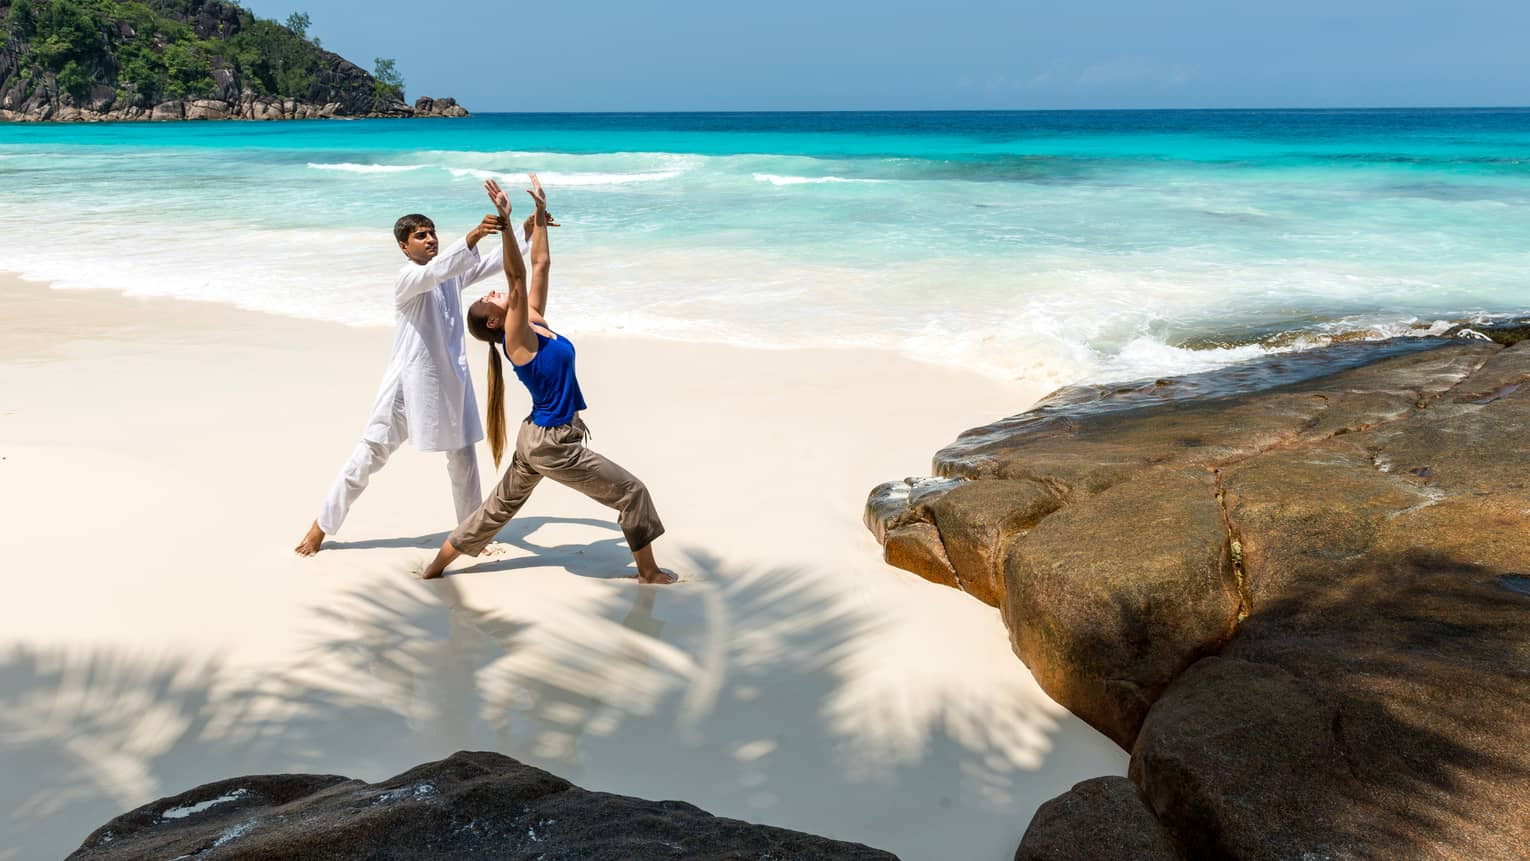 Yogi in white holds woman's arm as she does yoga pose on white sand beach by ocean